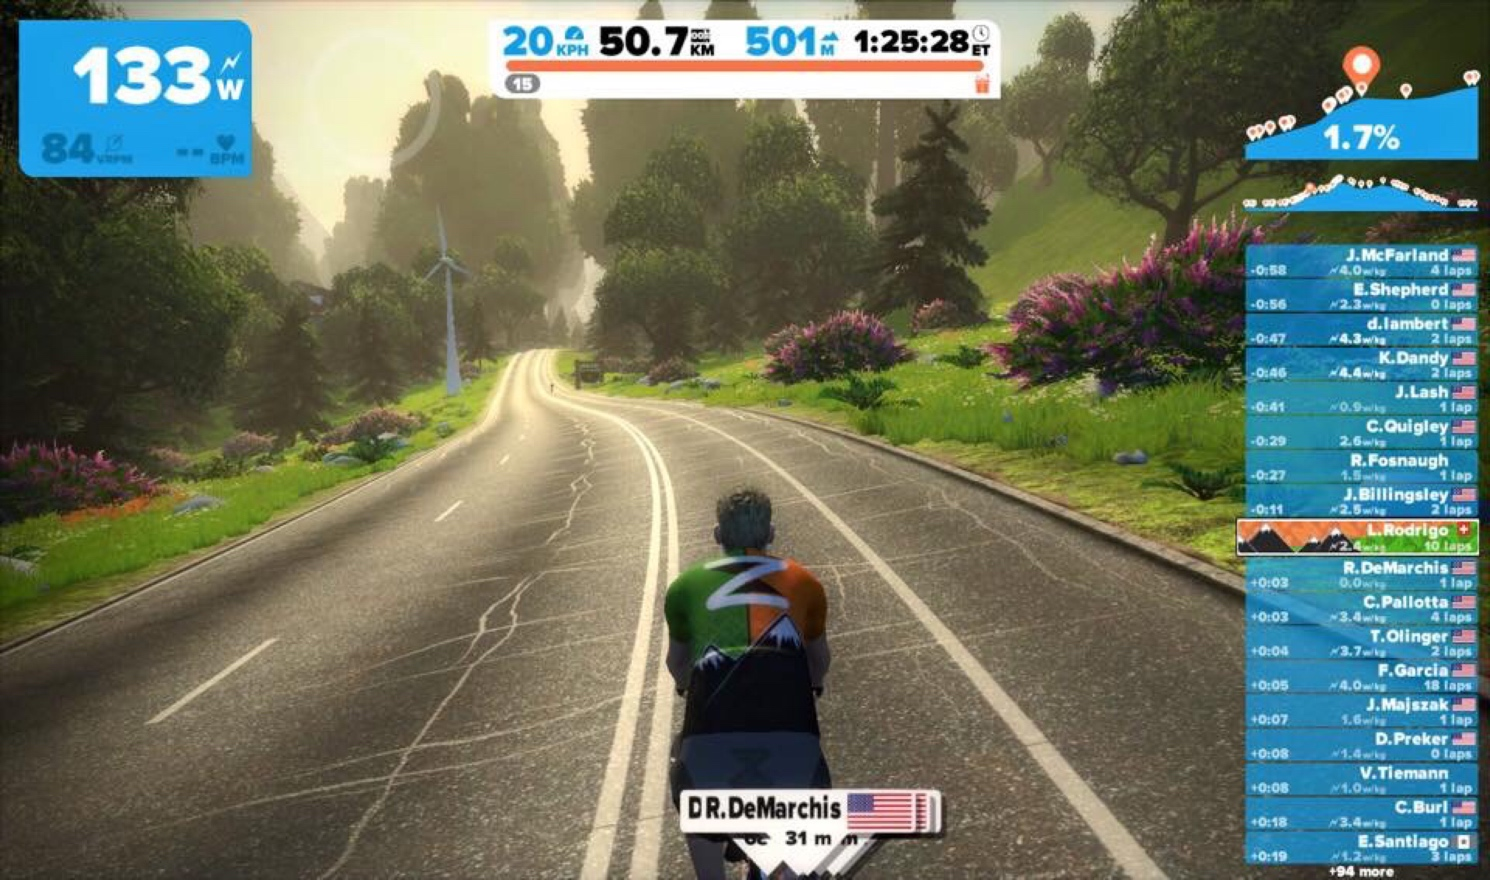 TitaniumGeek Zwift_three_Jersey Zwift User Manual - The Unofficial Guide to Zwift! Zwift phone app Zwift manual Zwift user manual updates manual ios Gear cycling android